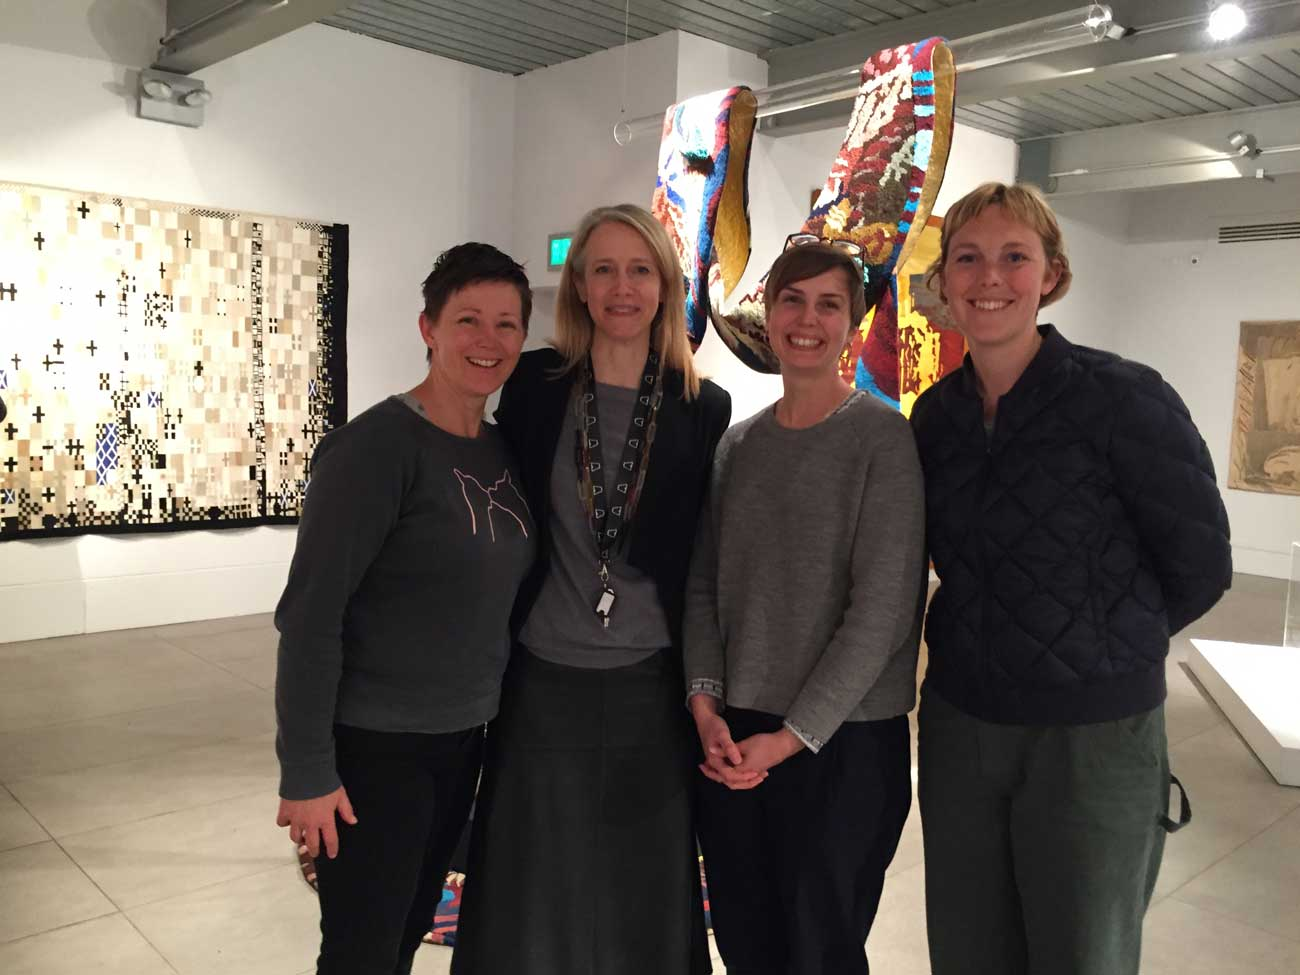 ATW Weaver Interns with Celia Joicey, Director of Dovecot Studios